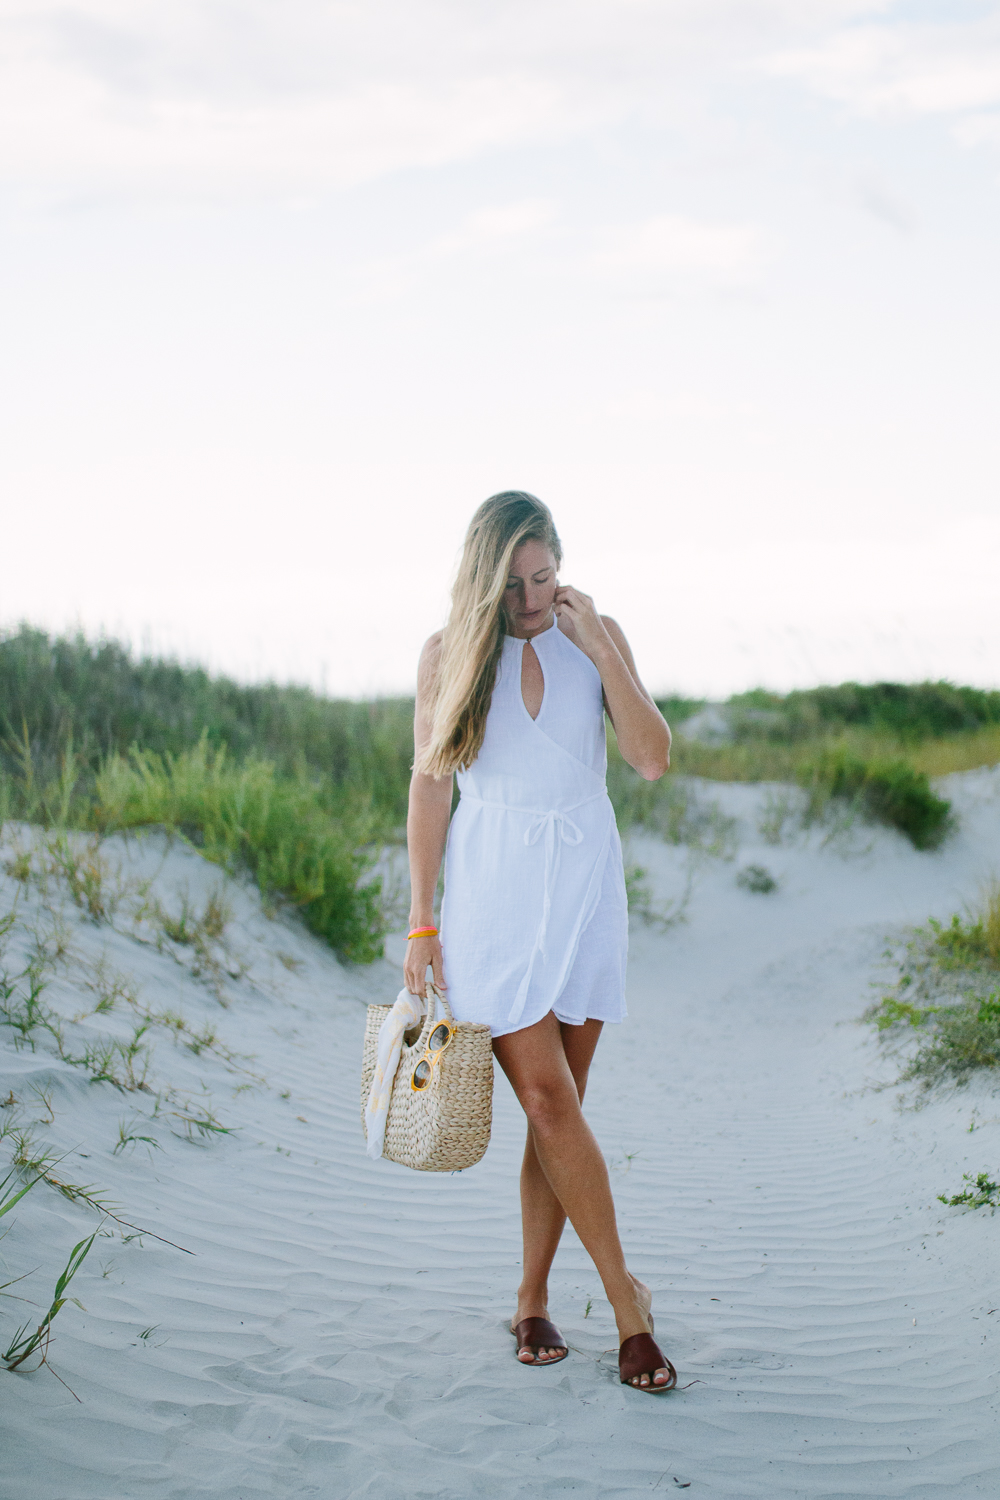 Summer Beach Outfit Inspiration | Sunshine Style